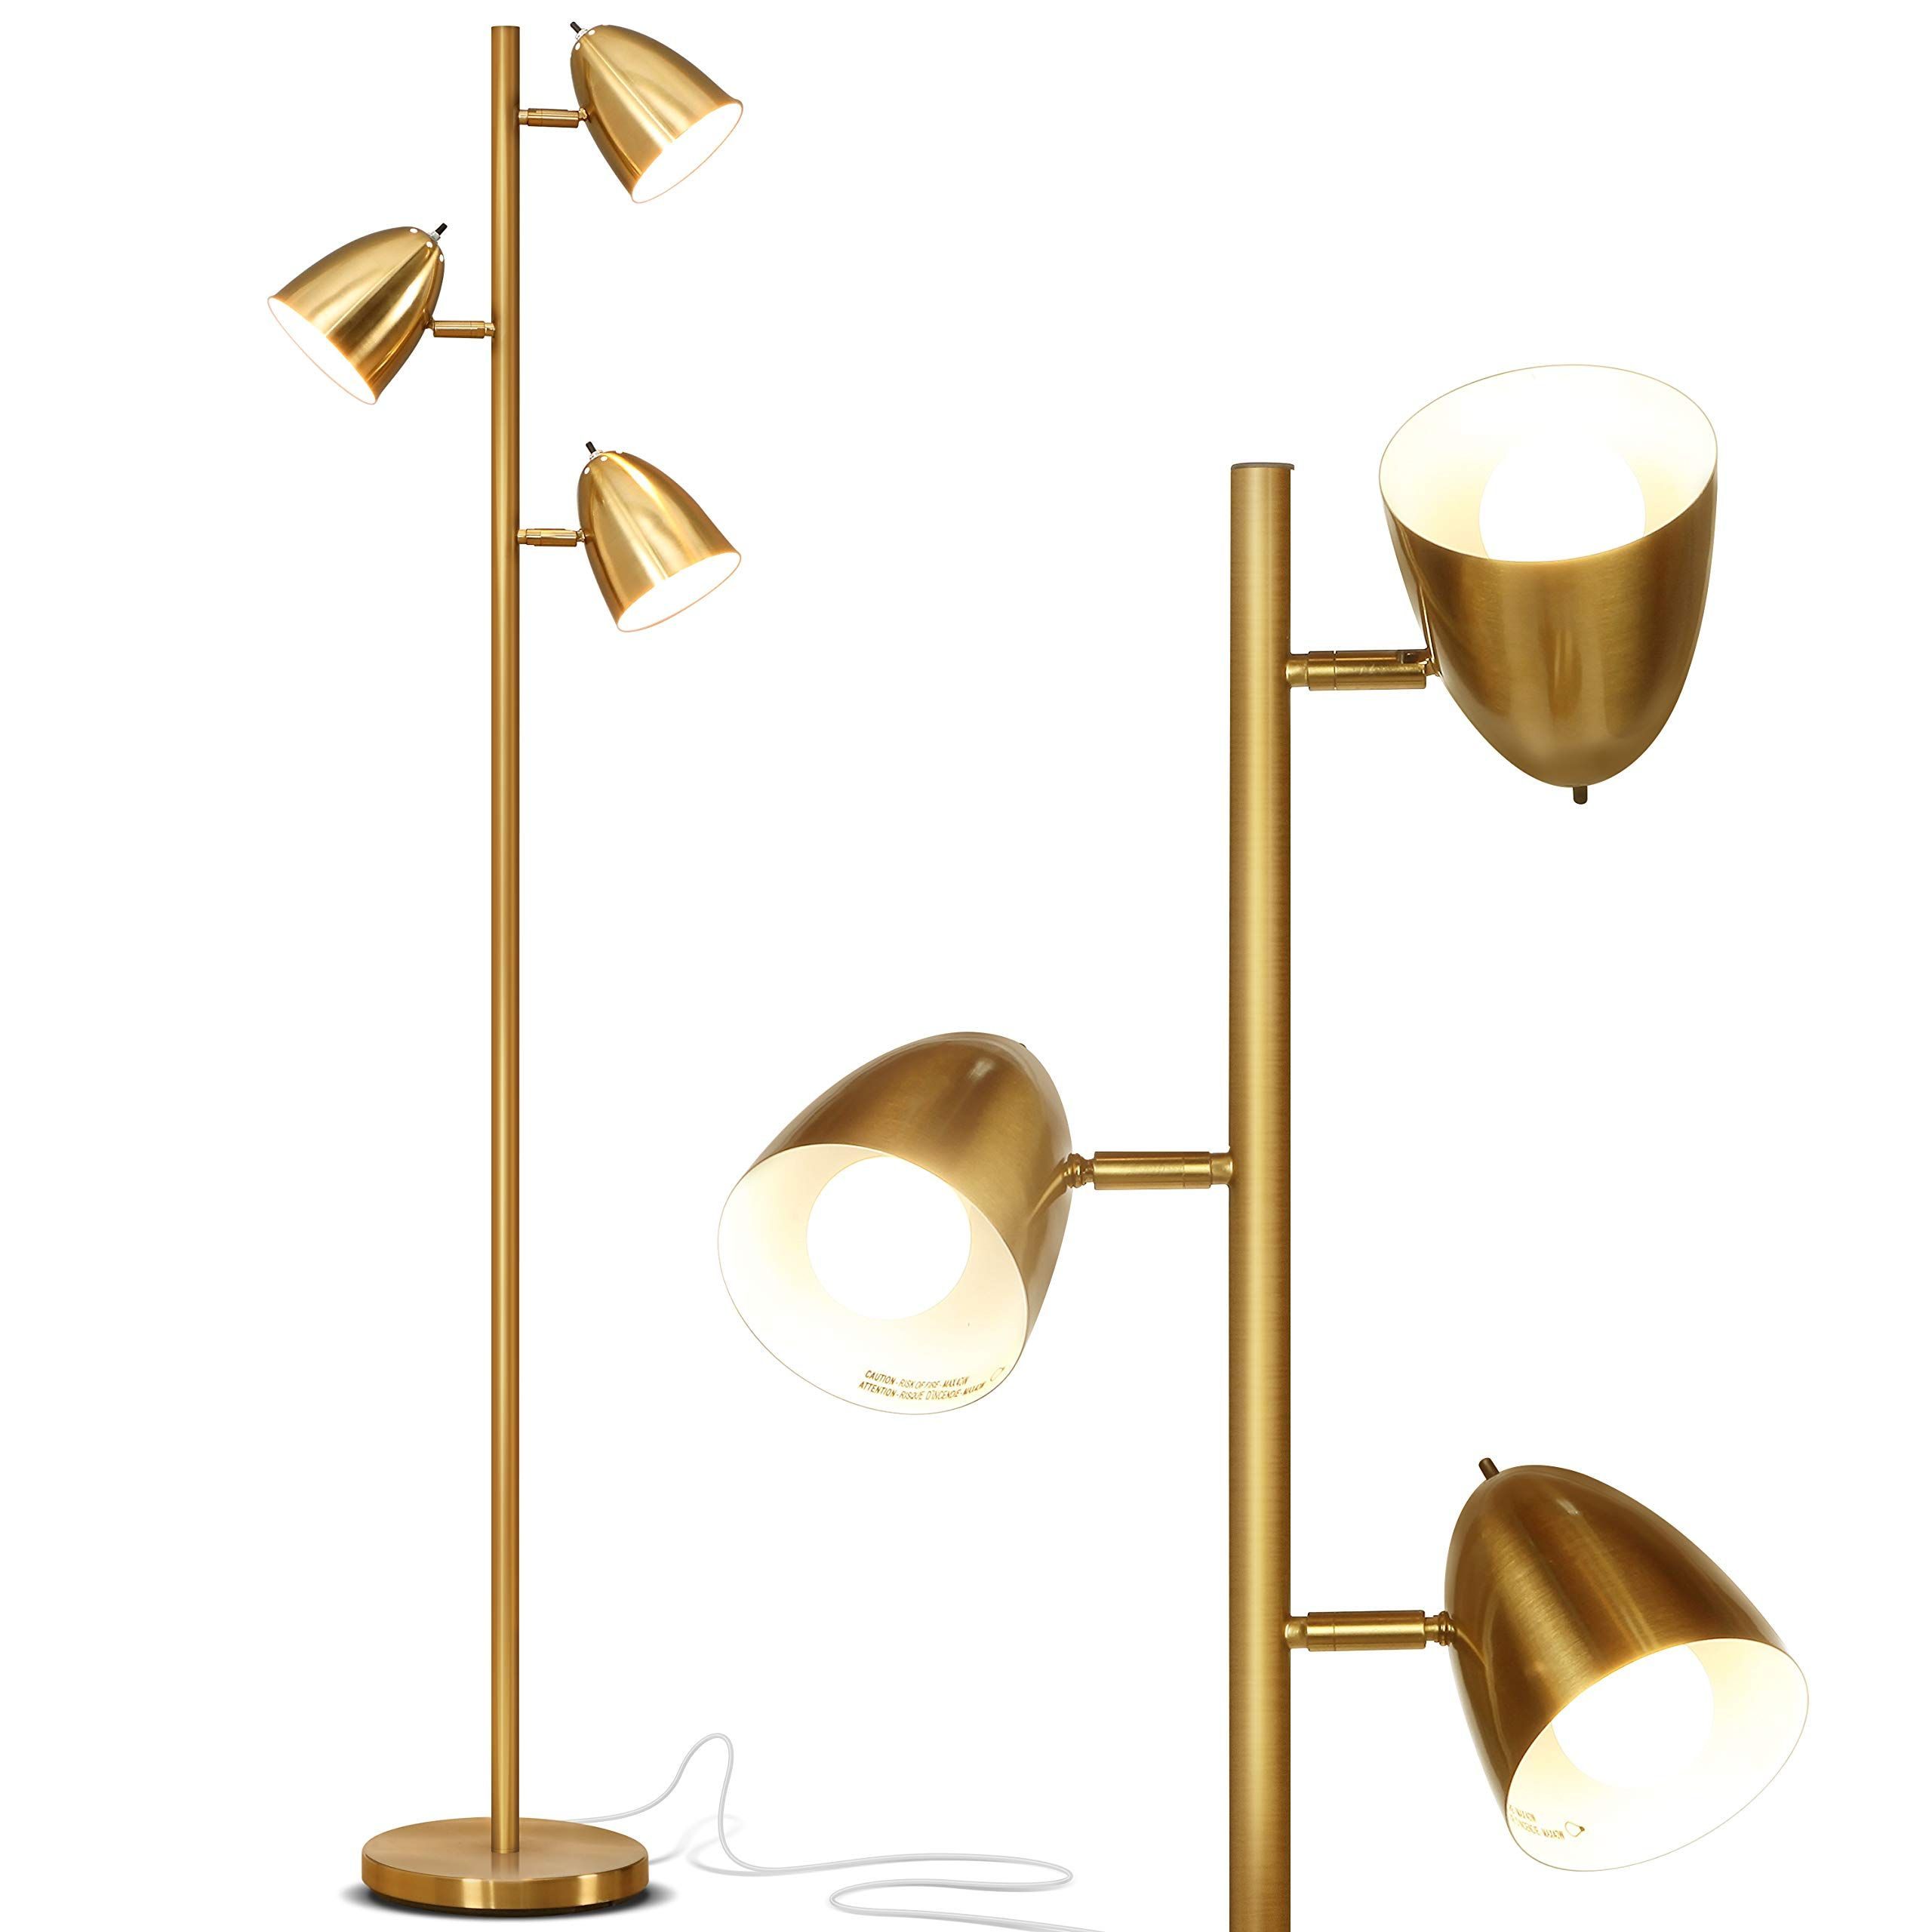 Brightech Jacob Led Reading And Floor Lamp For Living Rooms And Bedrooms Classy Mid Century Modern Adjustable Gold Floor Lamp Pole Lamps Lamps Living Room